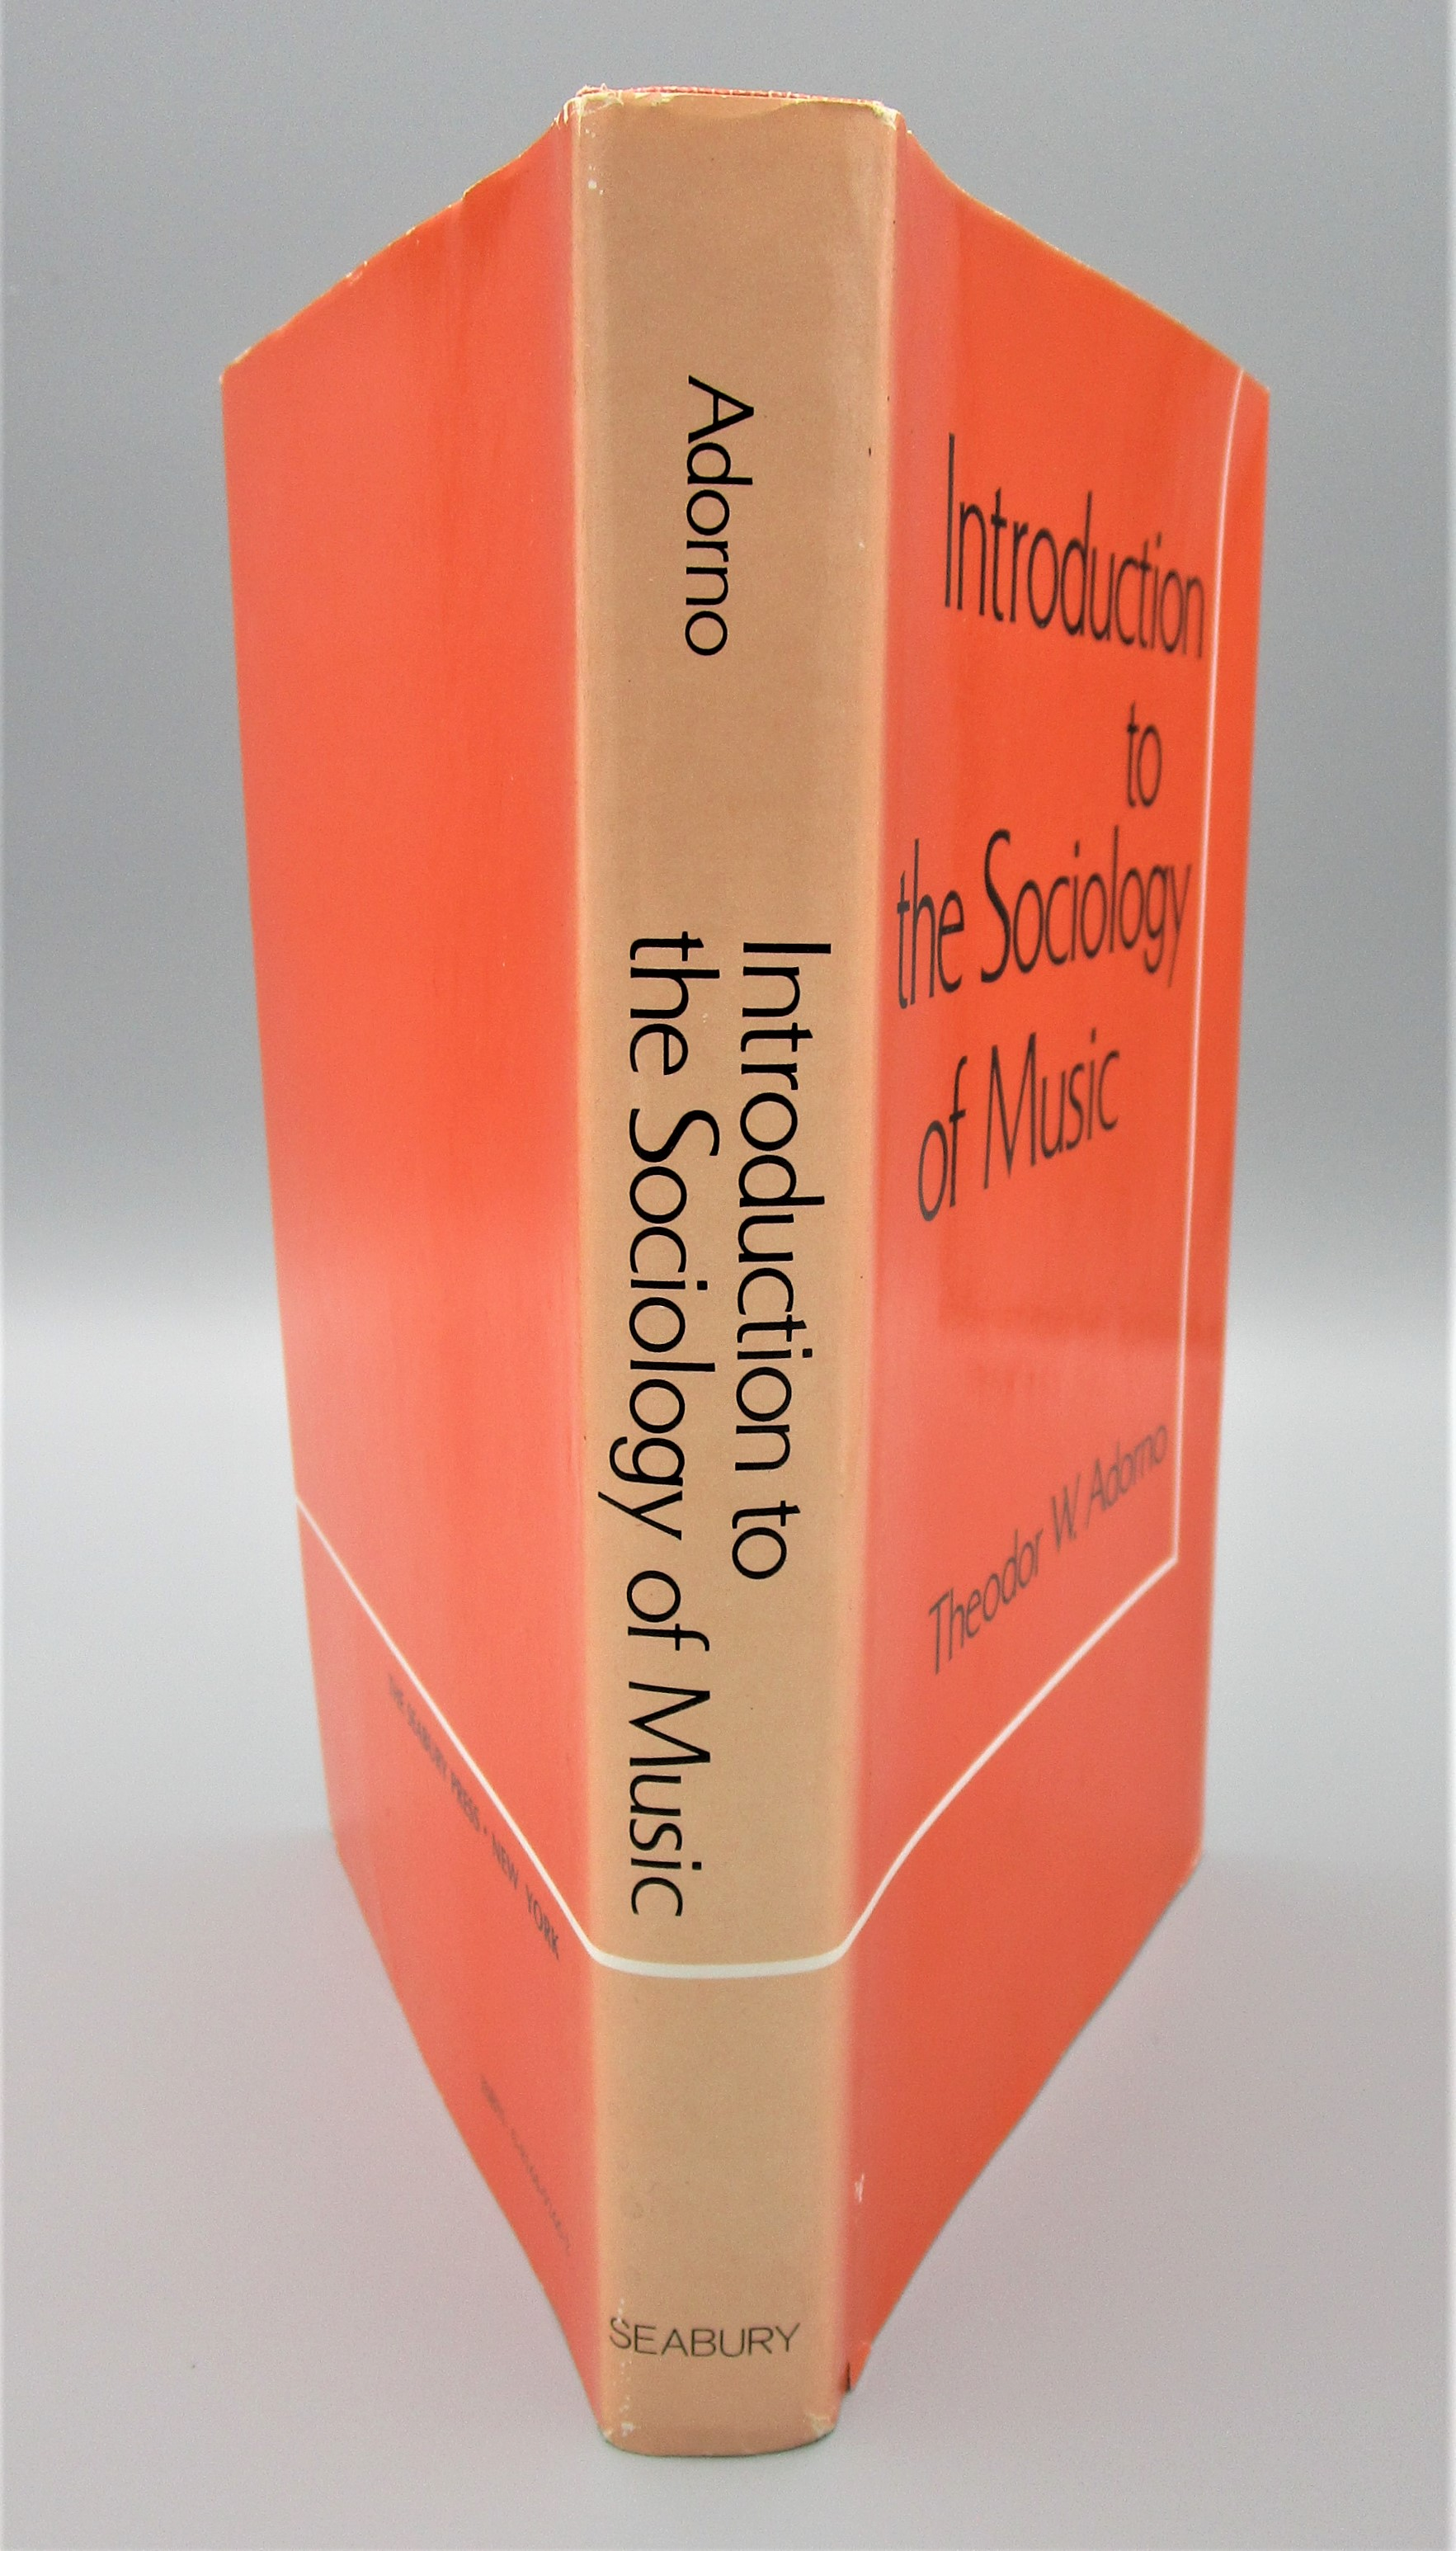 INTRODUCTION TO THE SOCIOLOGY OF MUSIC, by Theodor W. Adorno - 1976